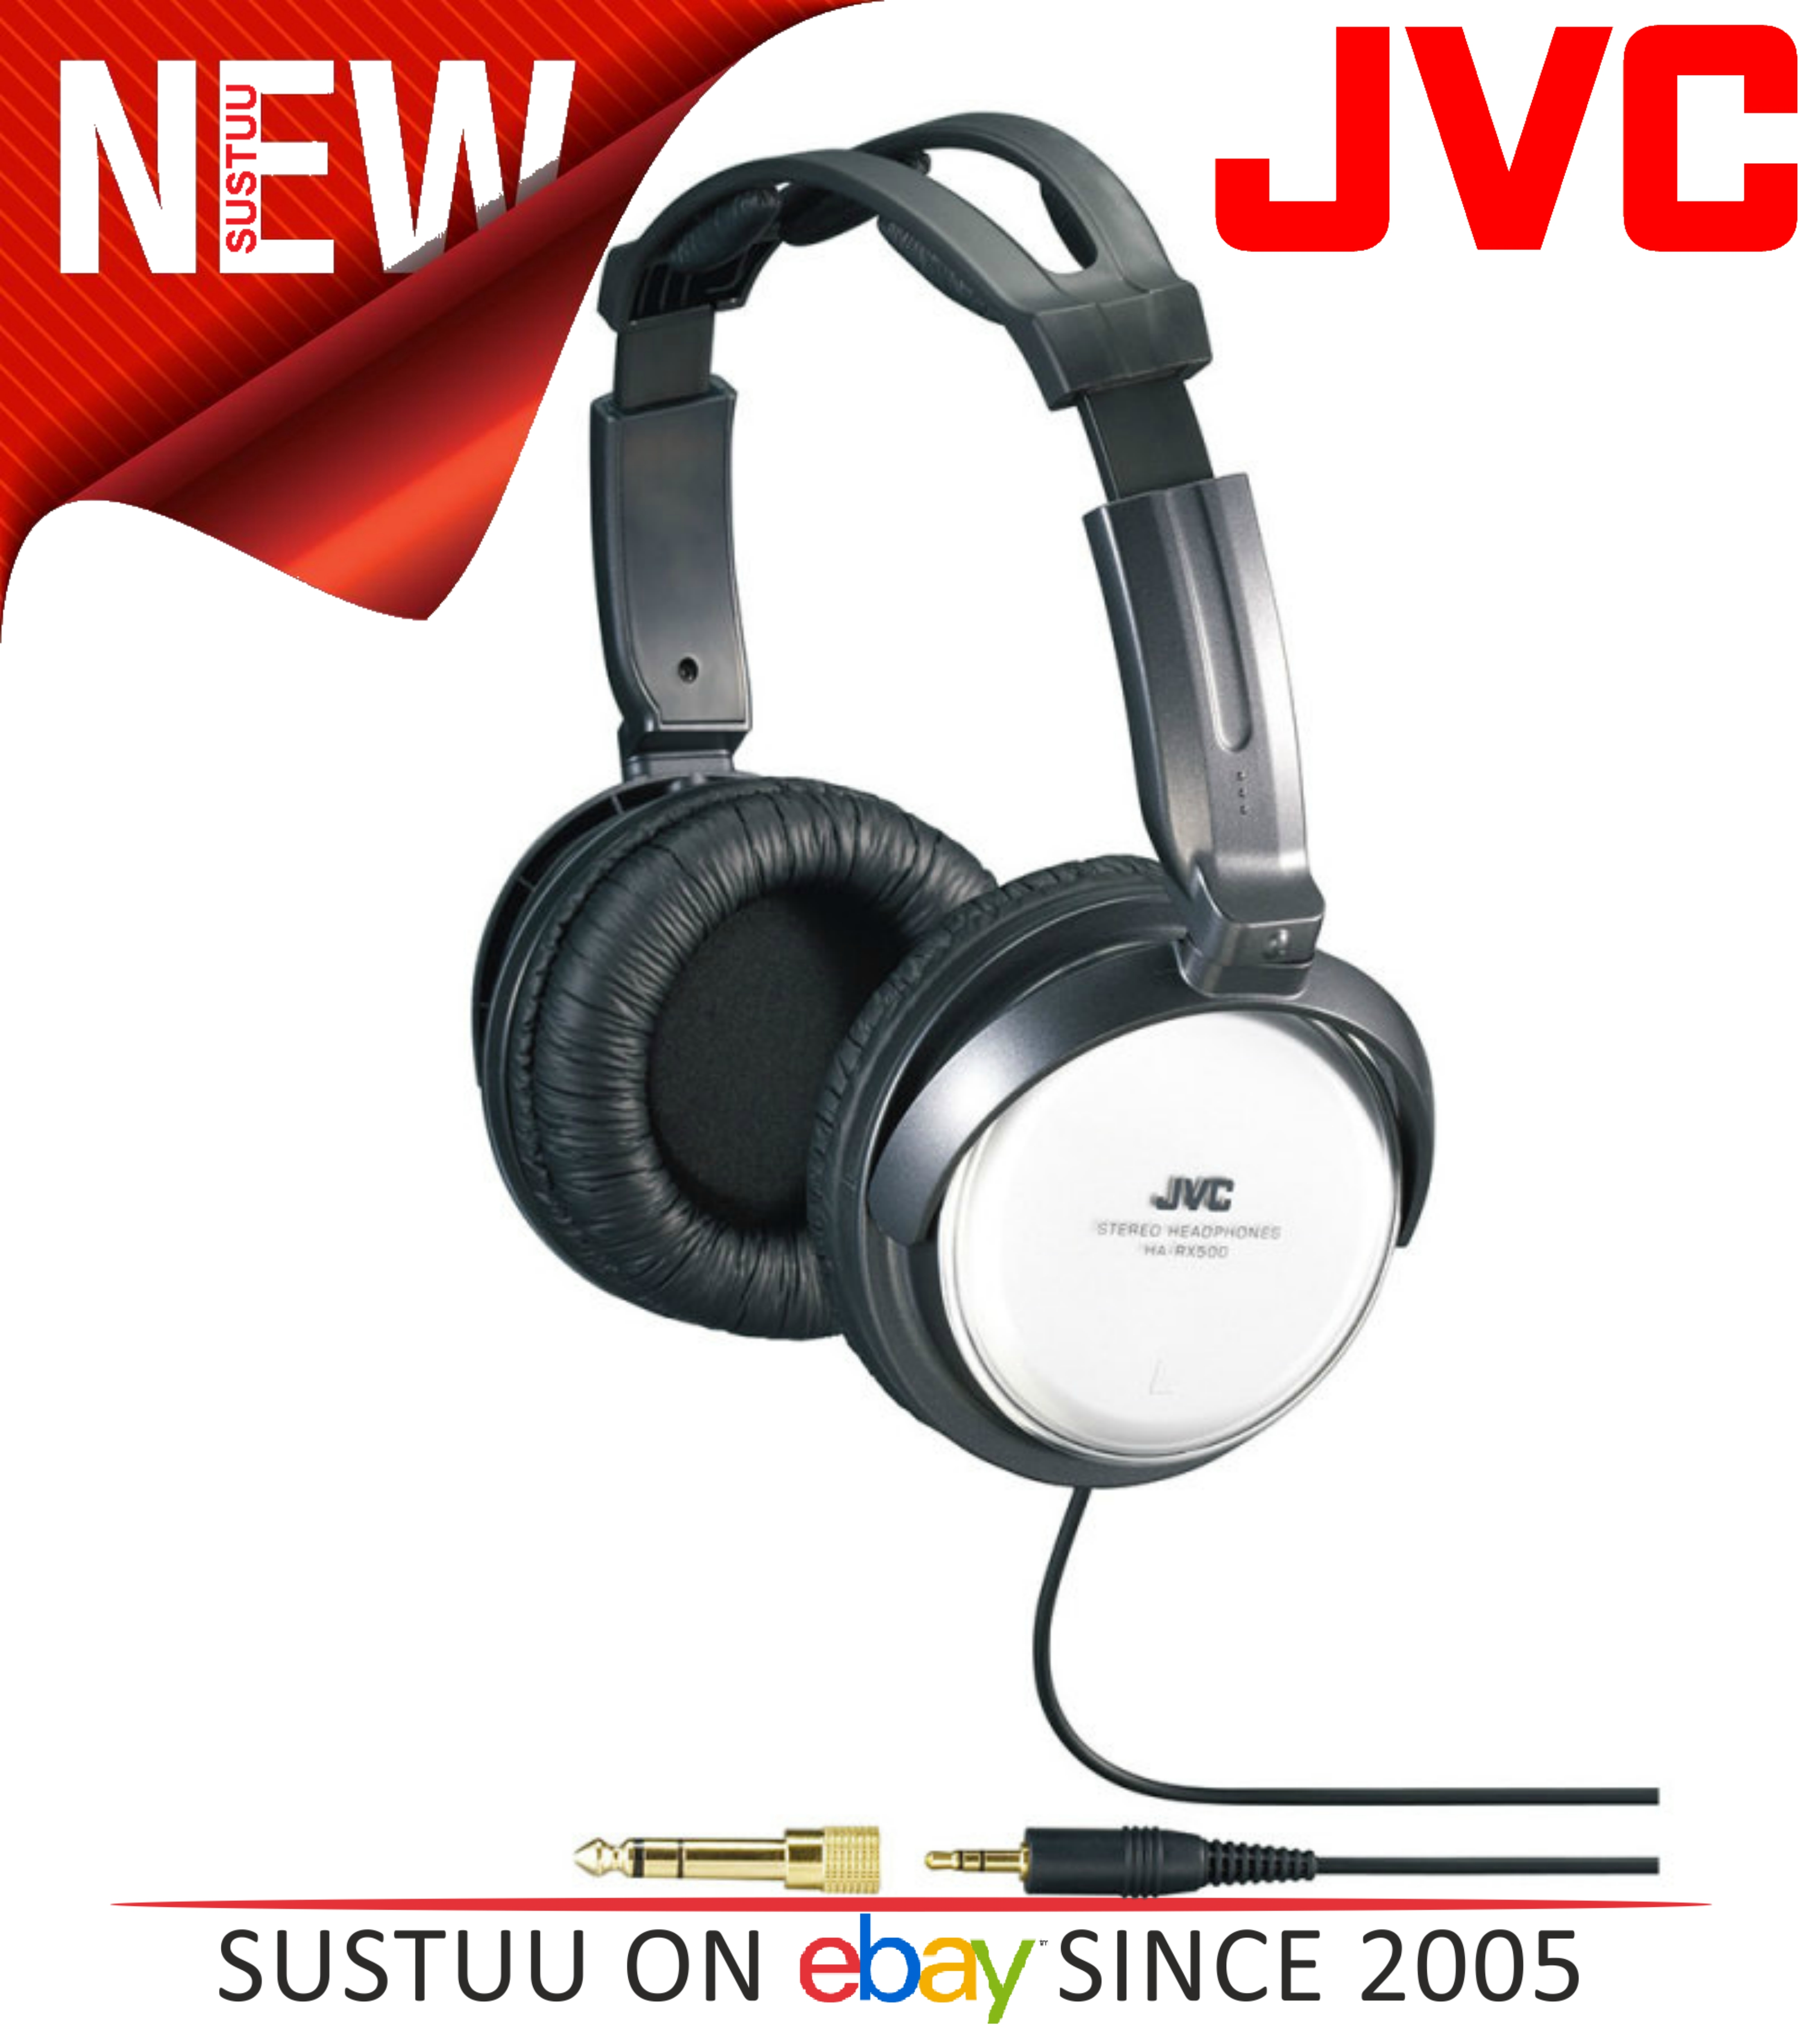 JVC HA-RX500 Silver Full Size High Quality Extra Bass Stereo Overhead Headphones